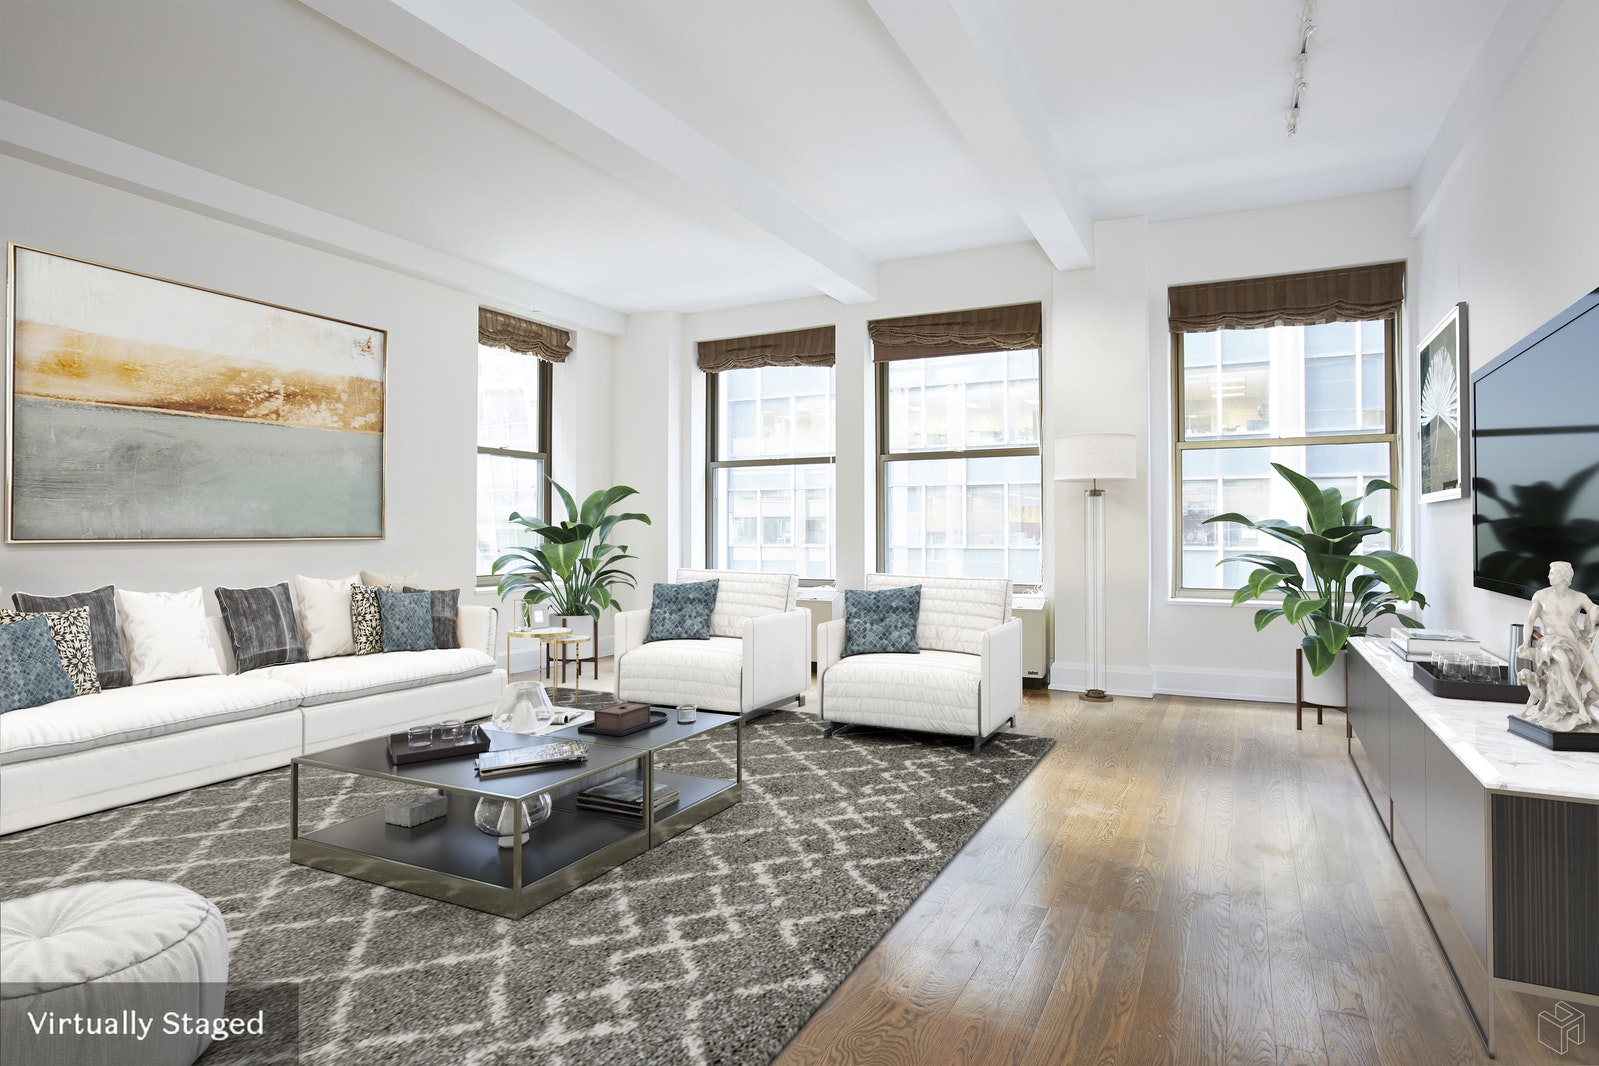 31 East  28th Street  5e, Midtown East, NYC, 10016, $3,095,000, Property For Sale, ID# 18457381, Halstead